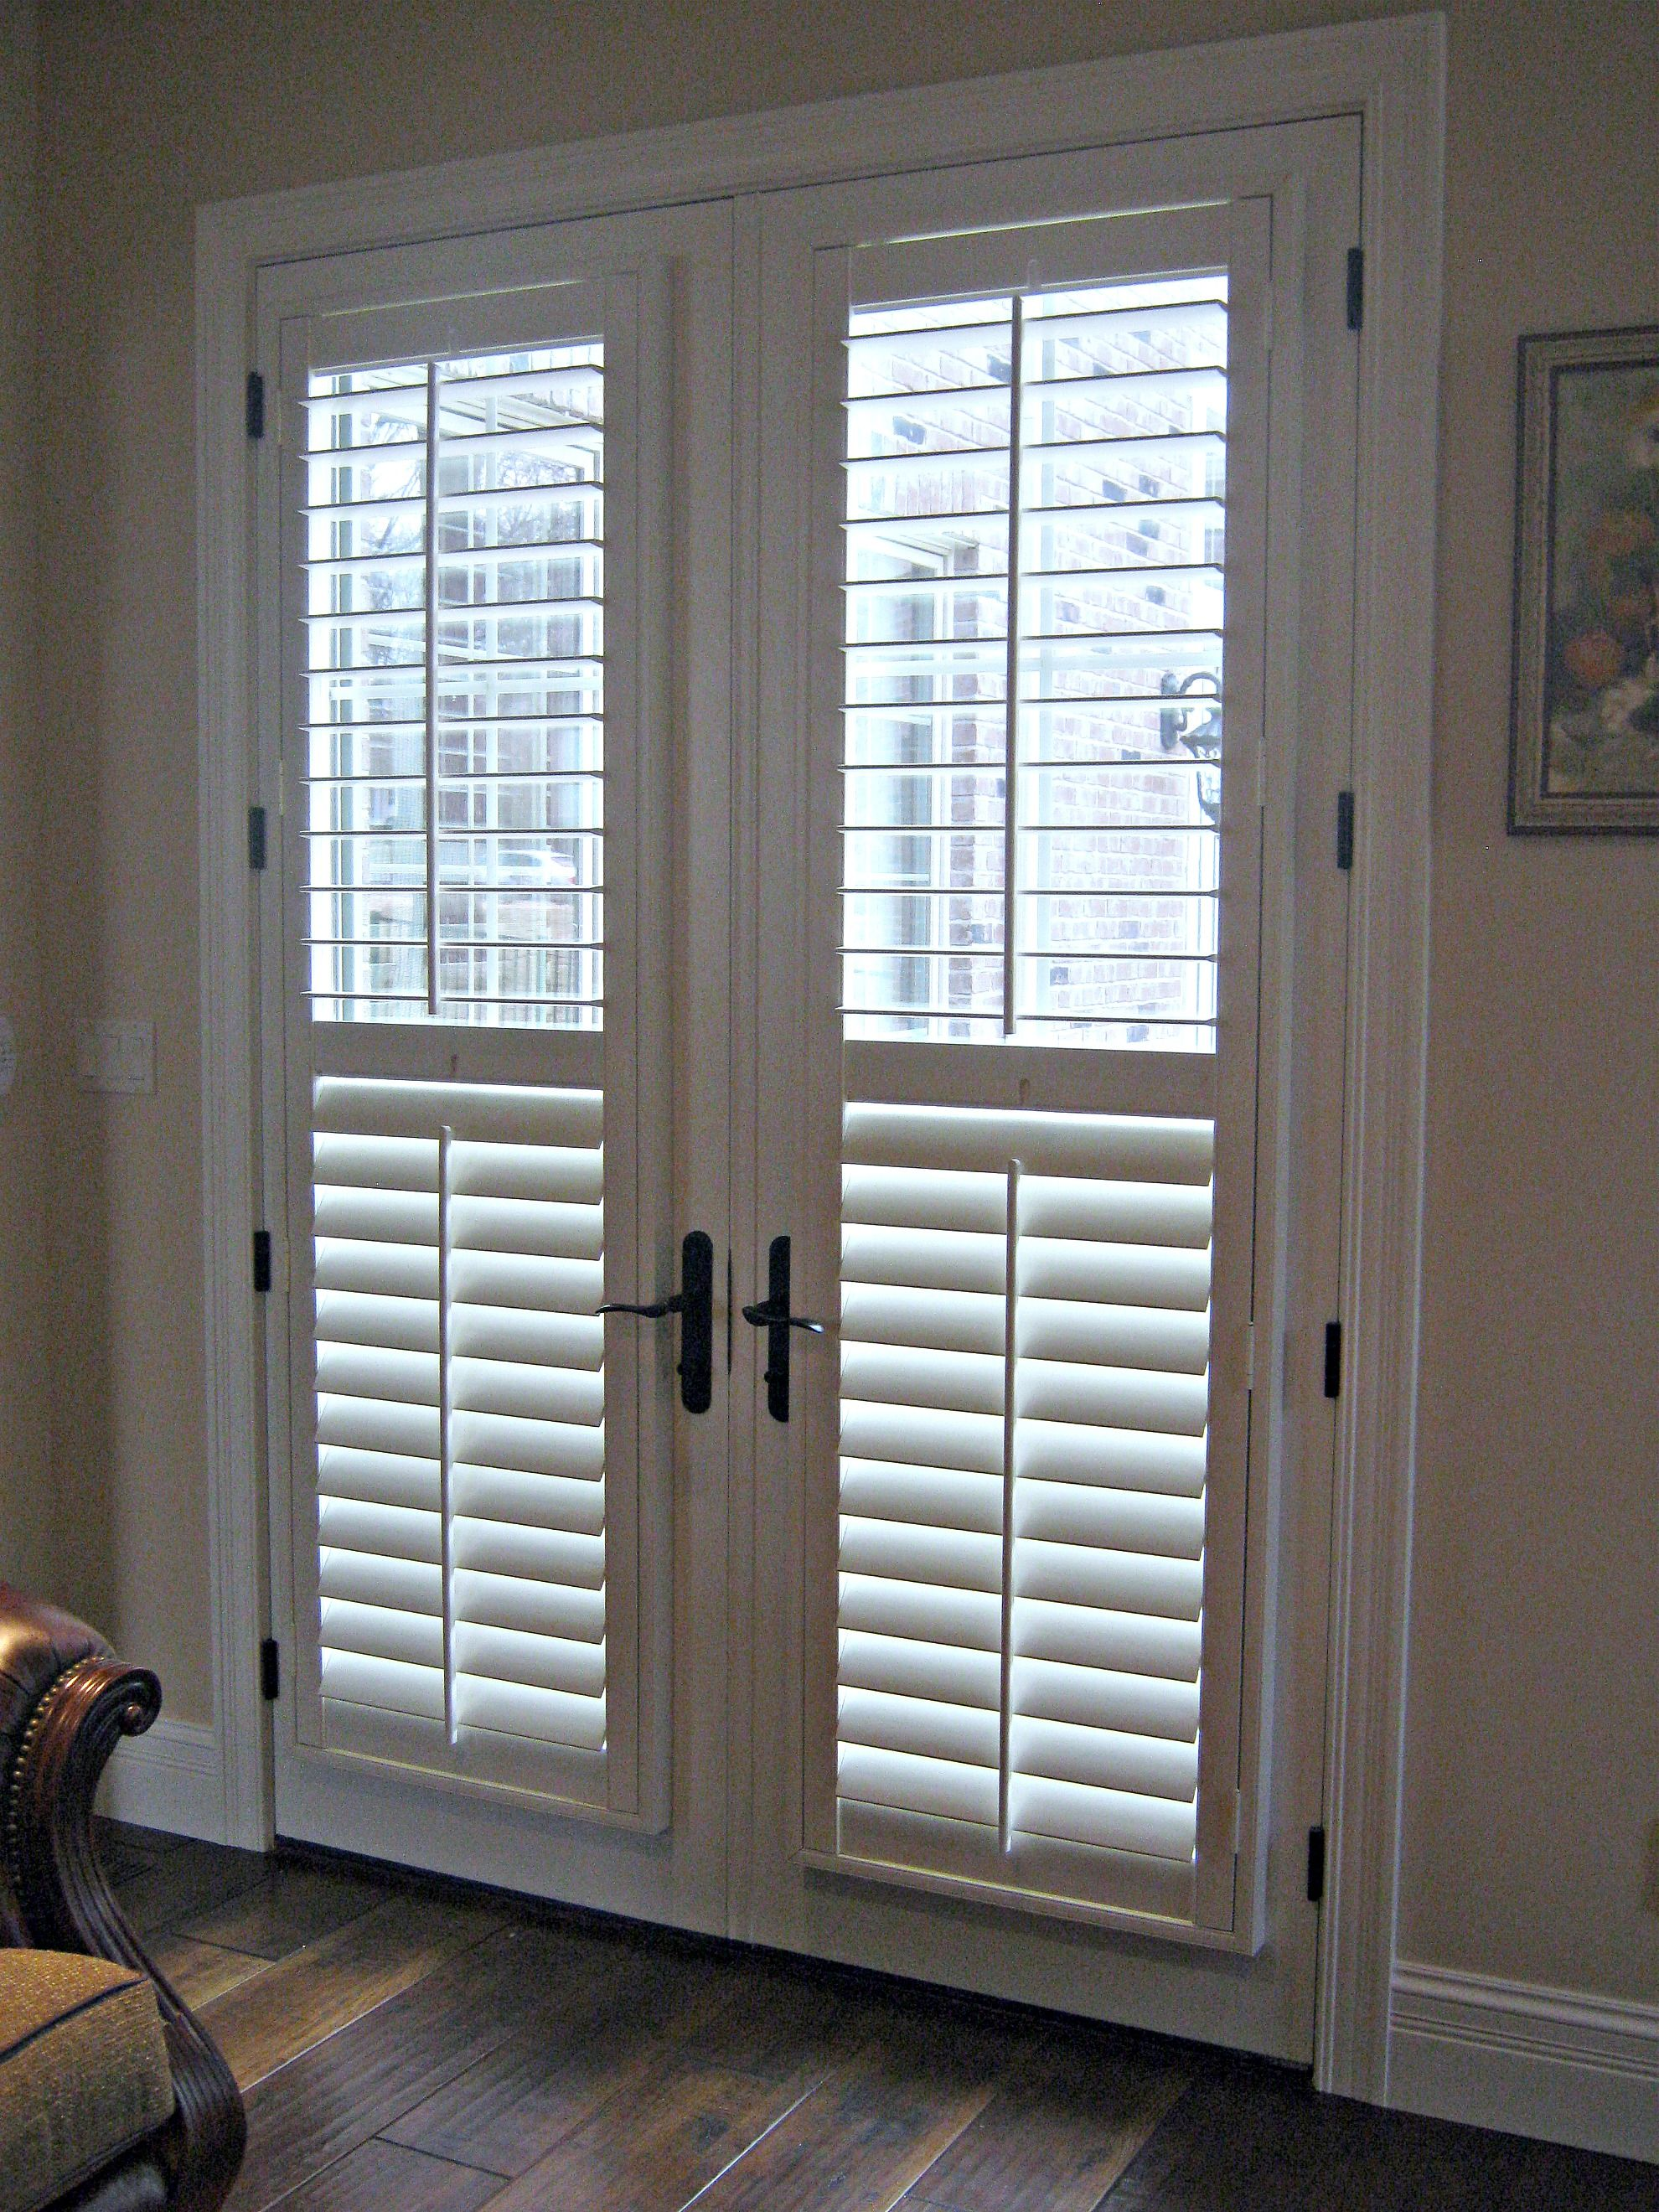 french doors with blinds. Looking For New Trending French Door Ideas? Find 35 Pictures Of The Very Best Ideas From Top Designers. Doors With Blinds -